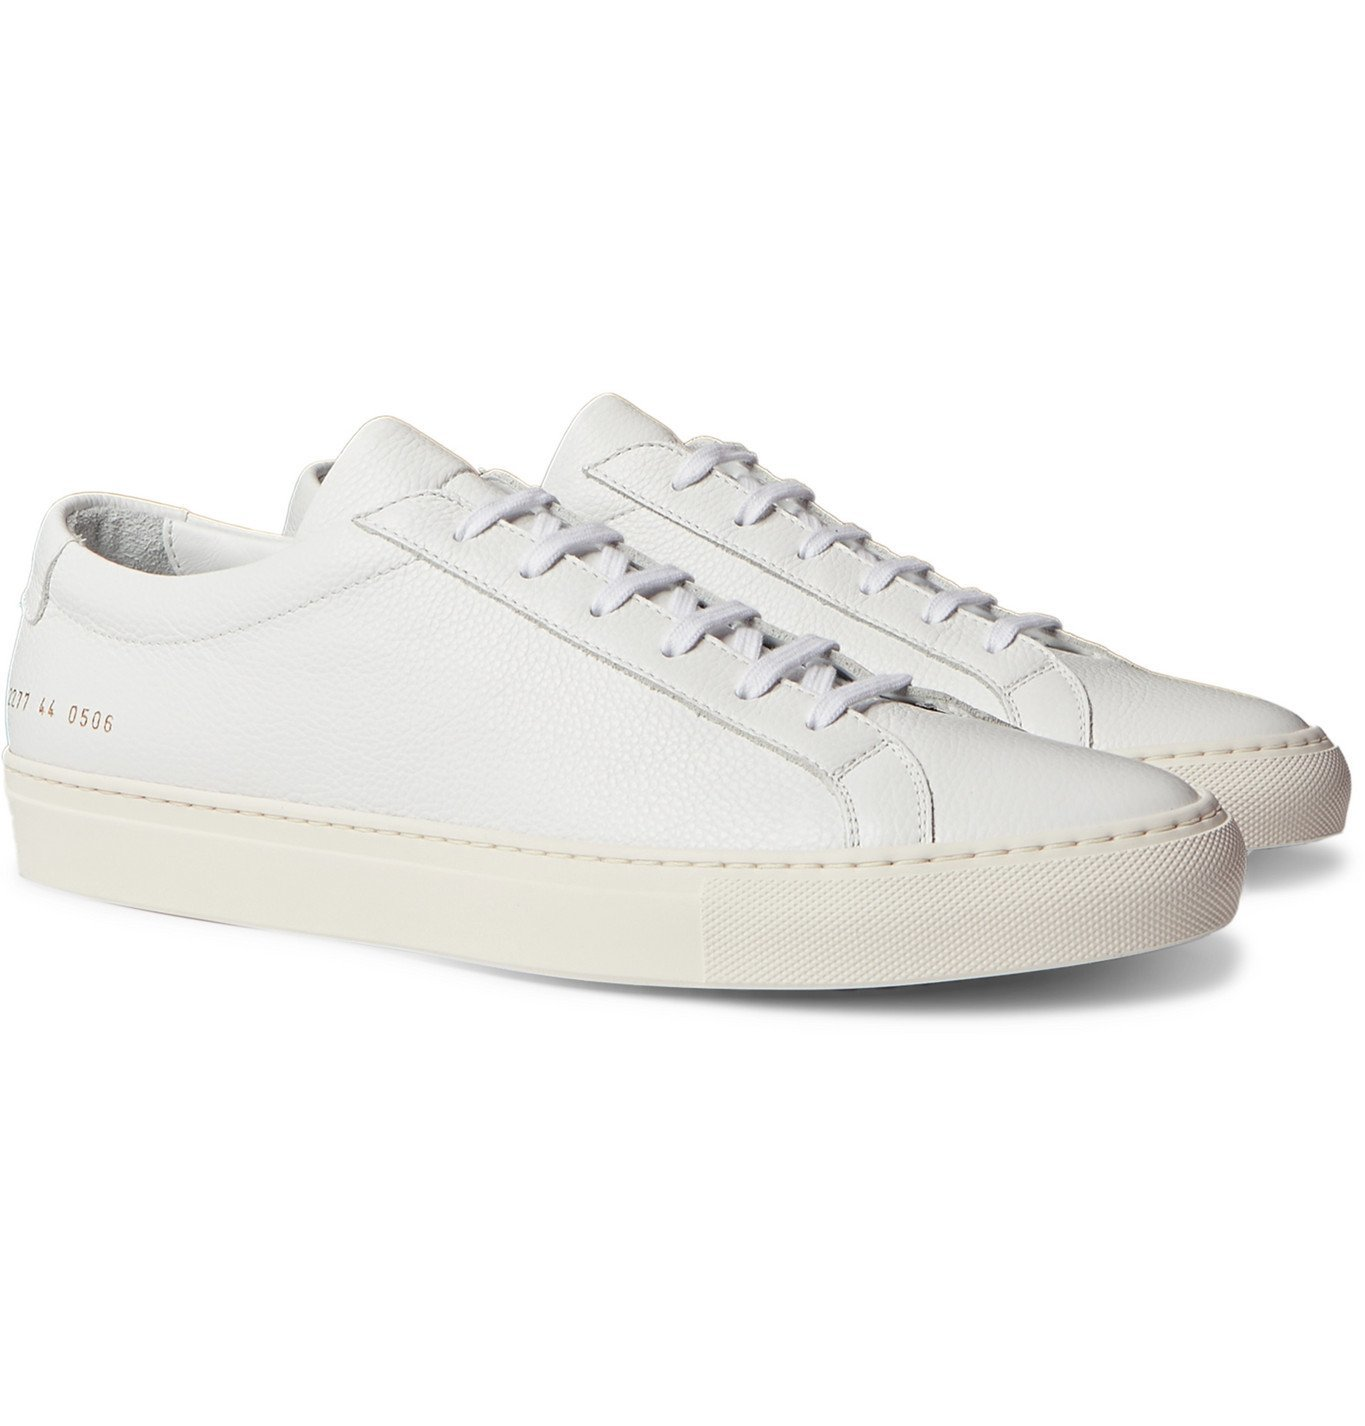 Common Projects - Achilles Pebble-Grain Leather Sneakers - White